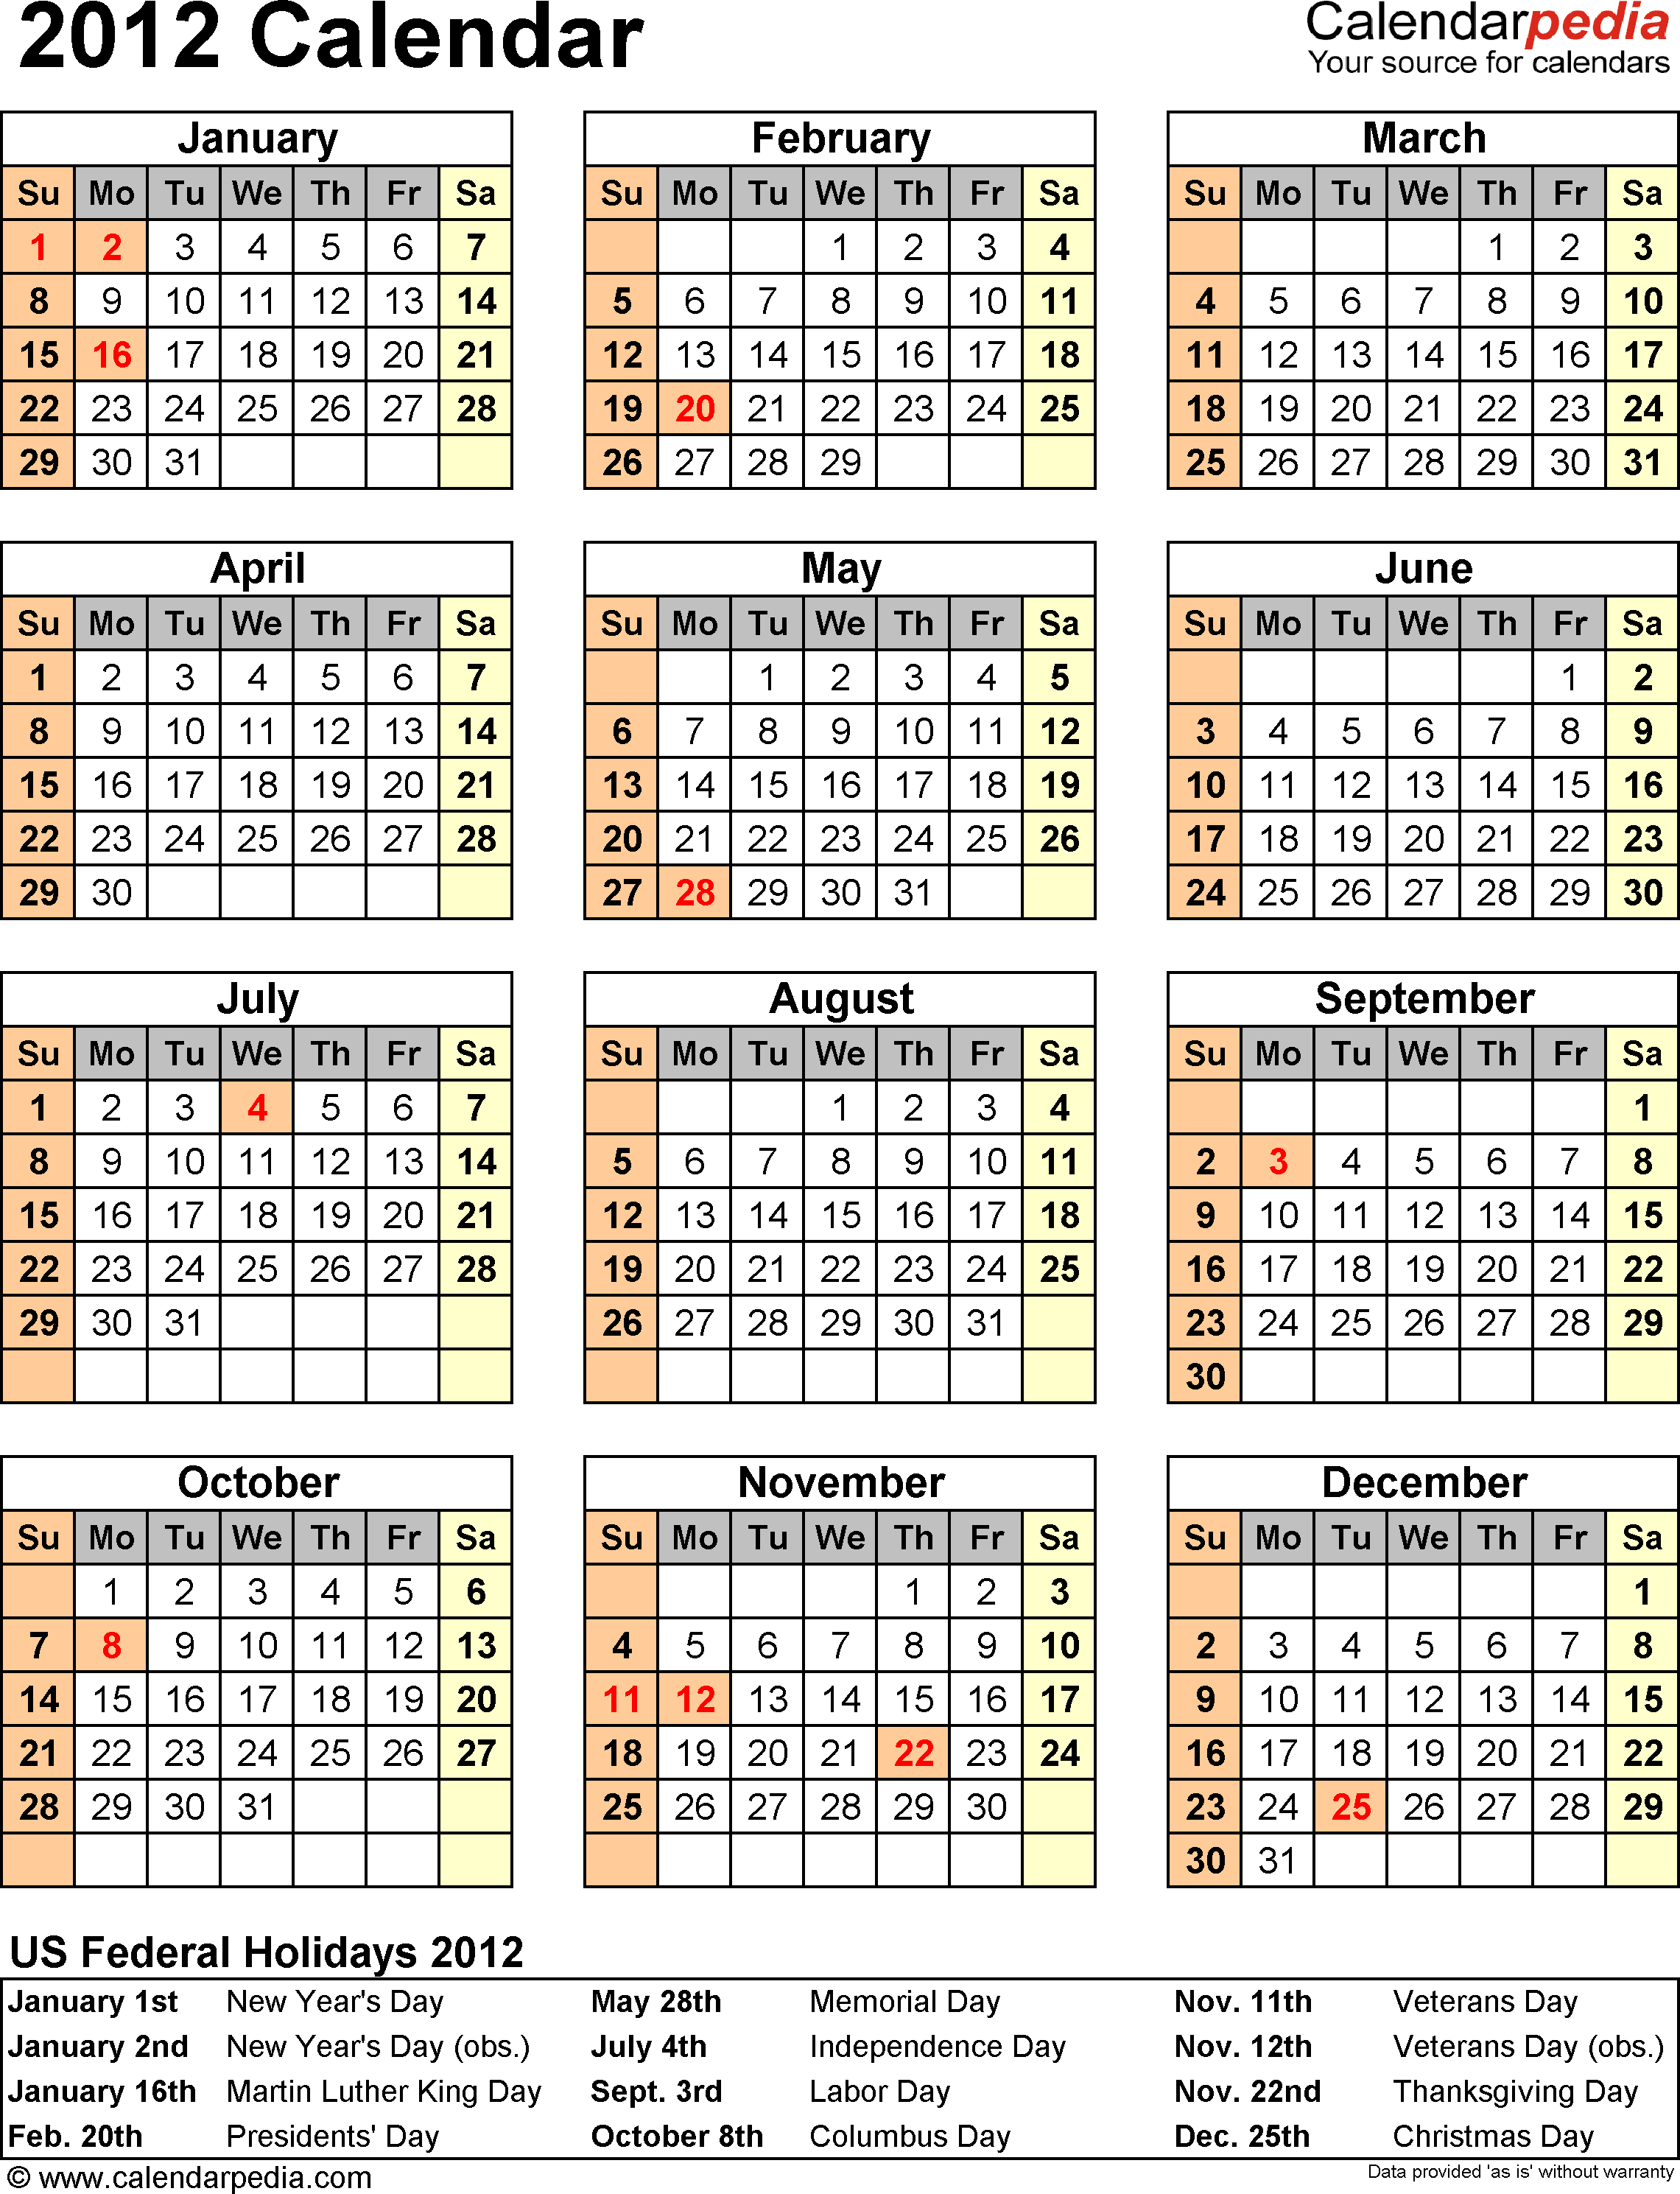 Download Download PDF template for 2012 calendar template 10: portrait orientation, 1 page